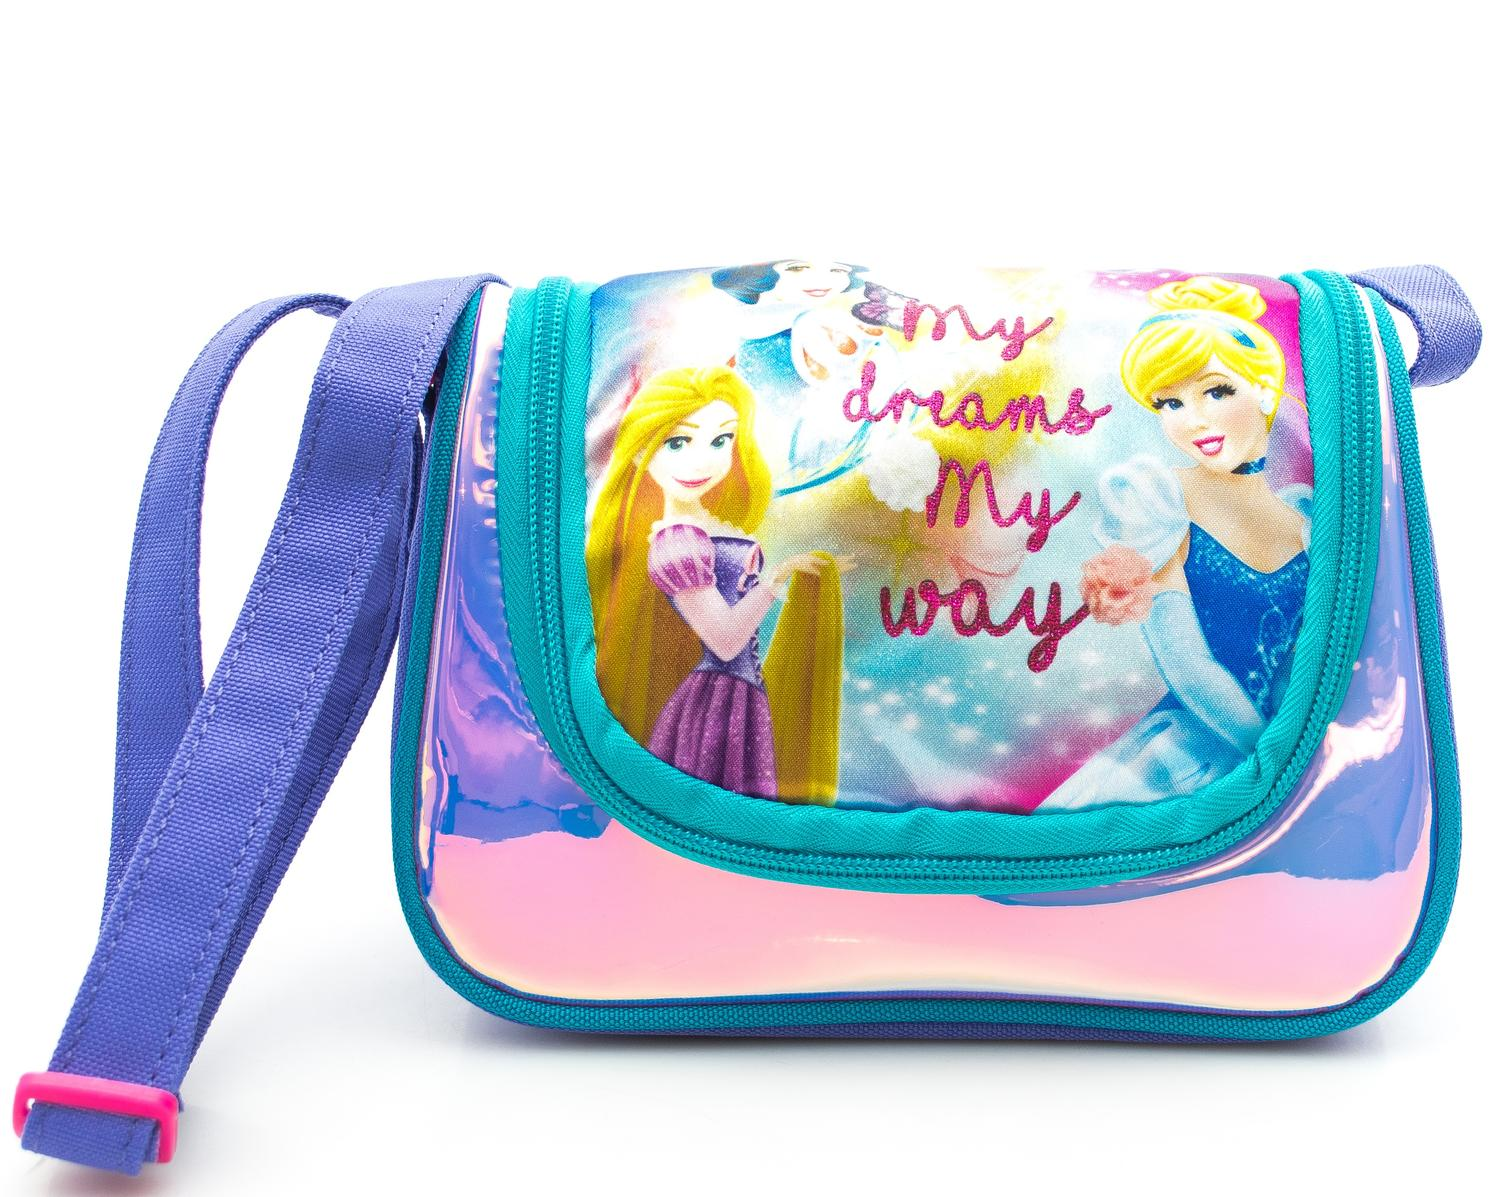 Kids bags and accessories - DISNEY MY DREAMS MY WAY, crossbody